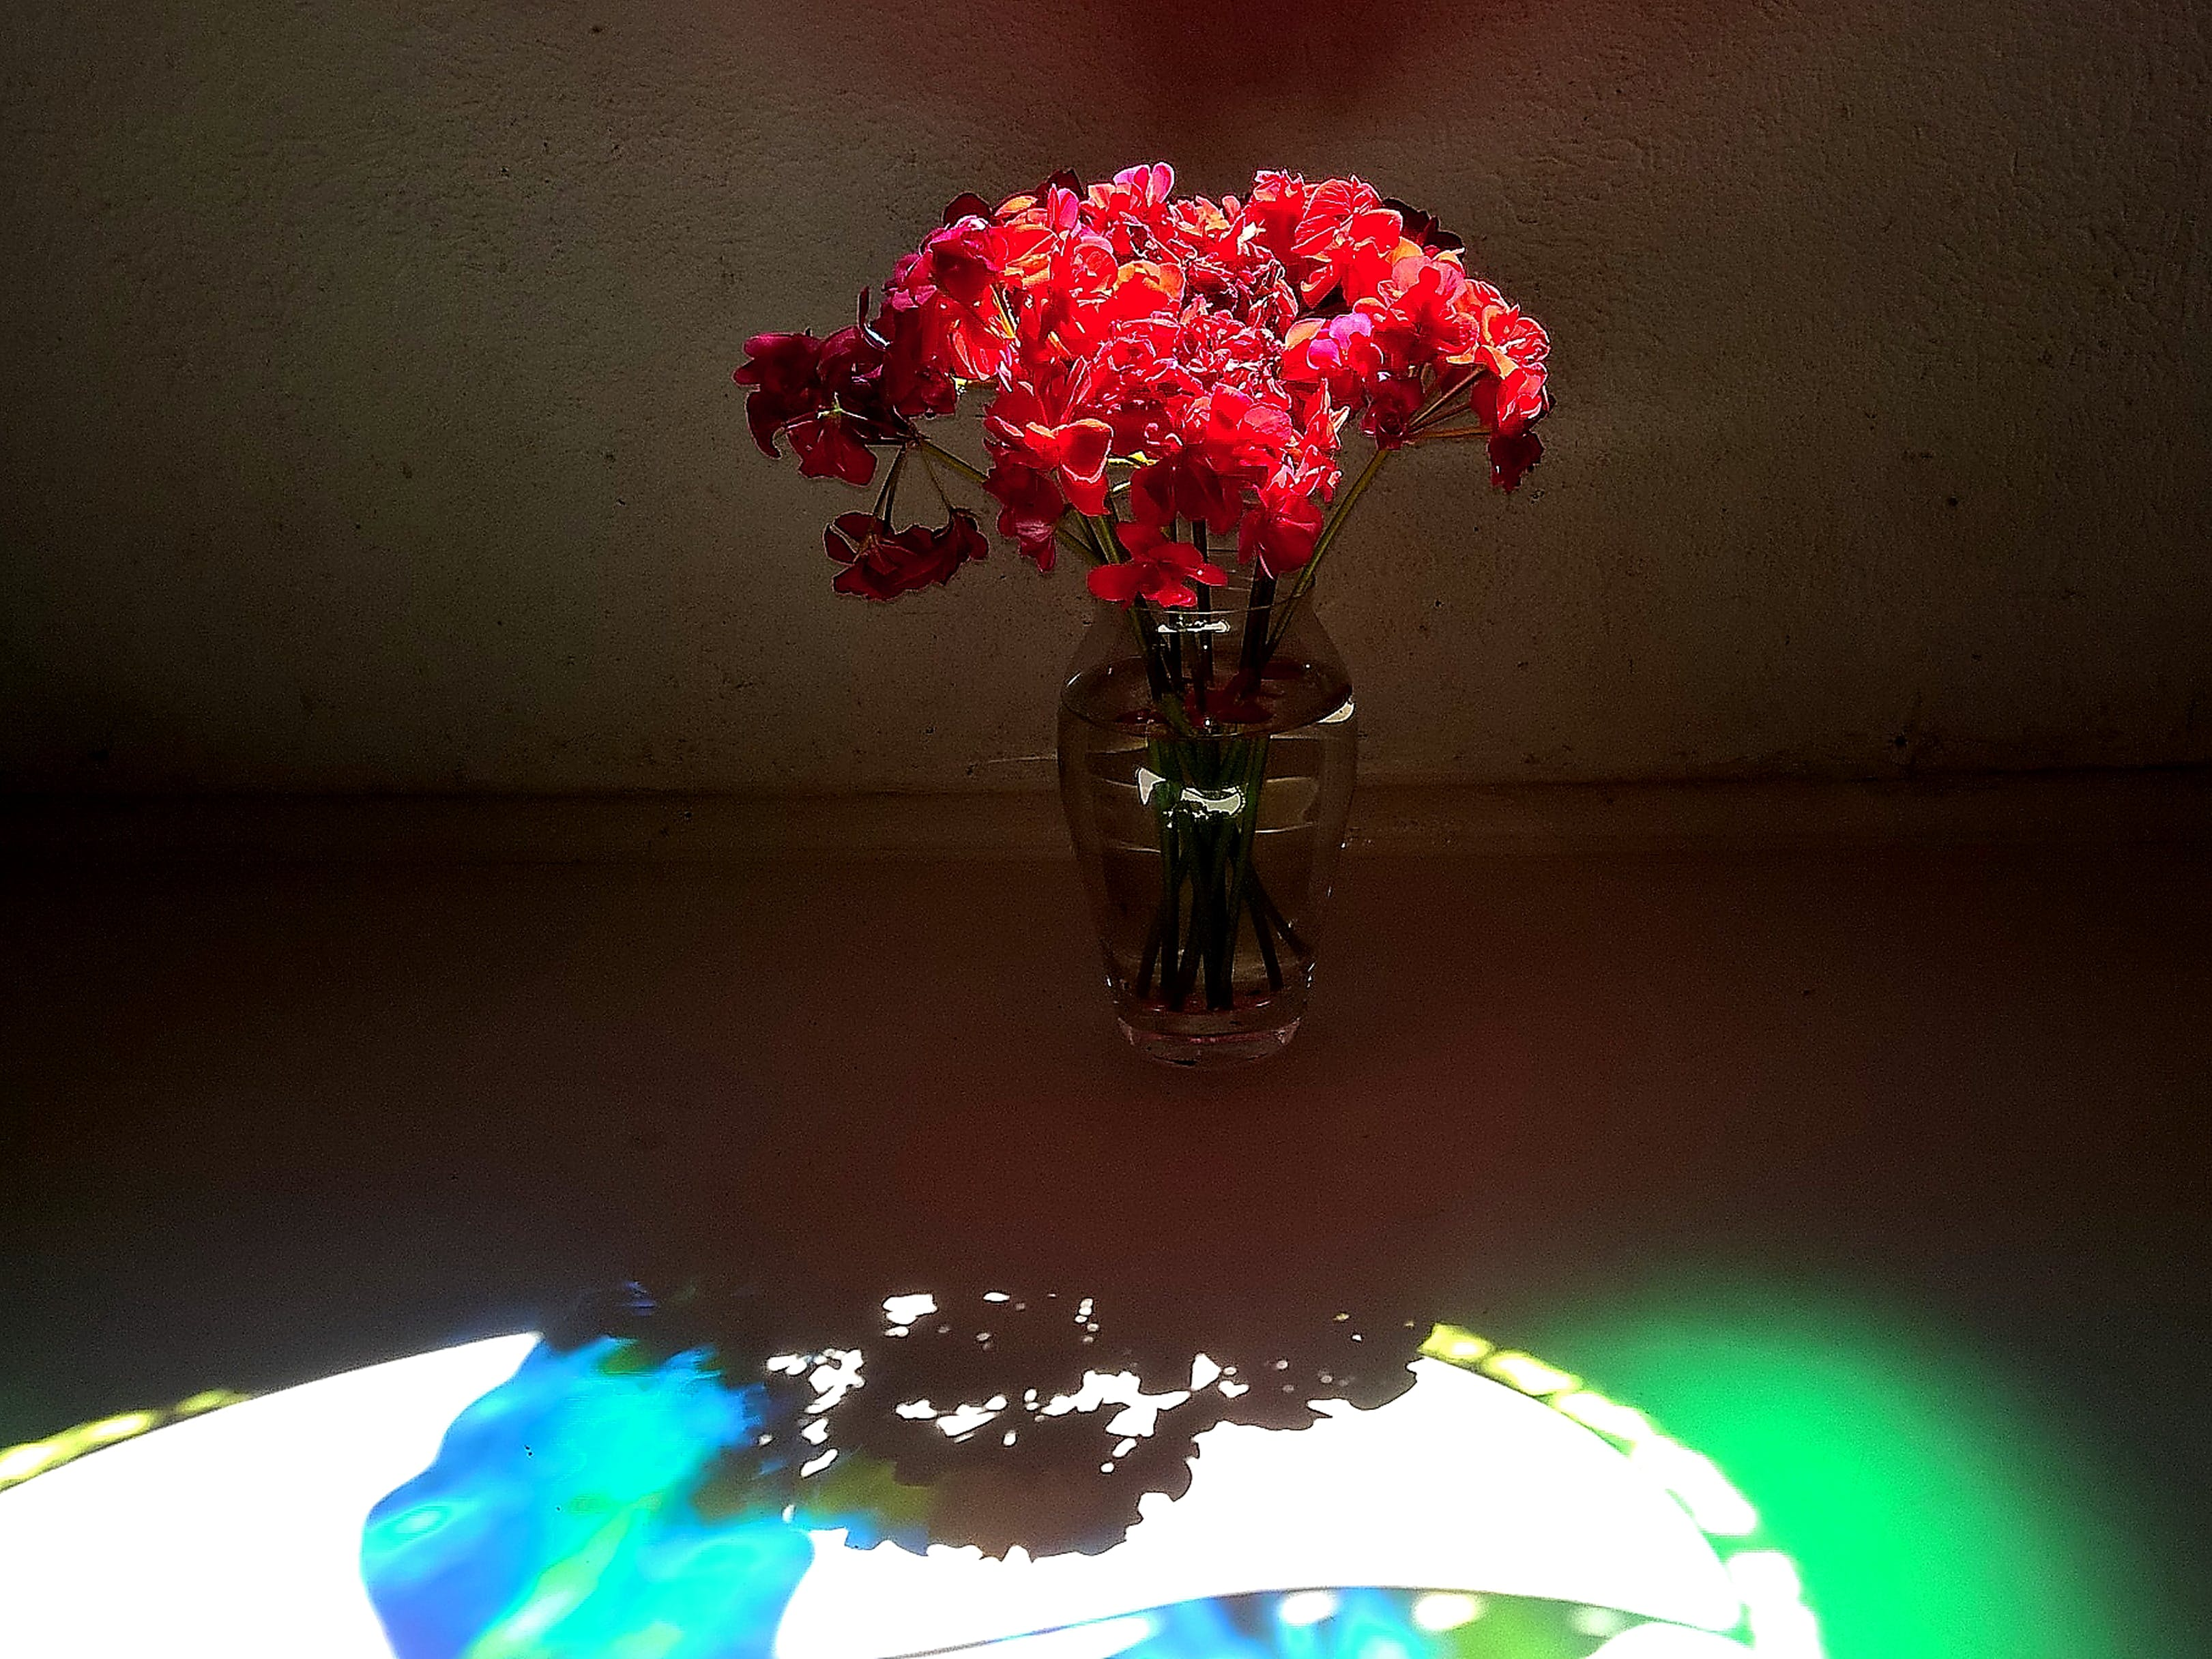 Free stock photo of flowers, light, shadows, vase